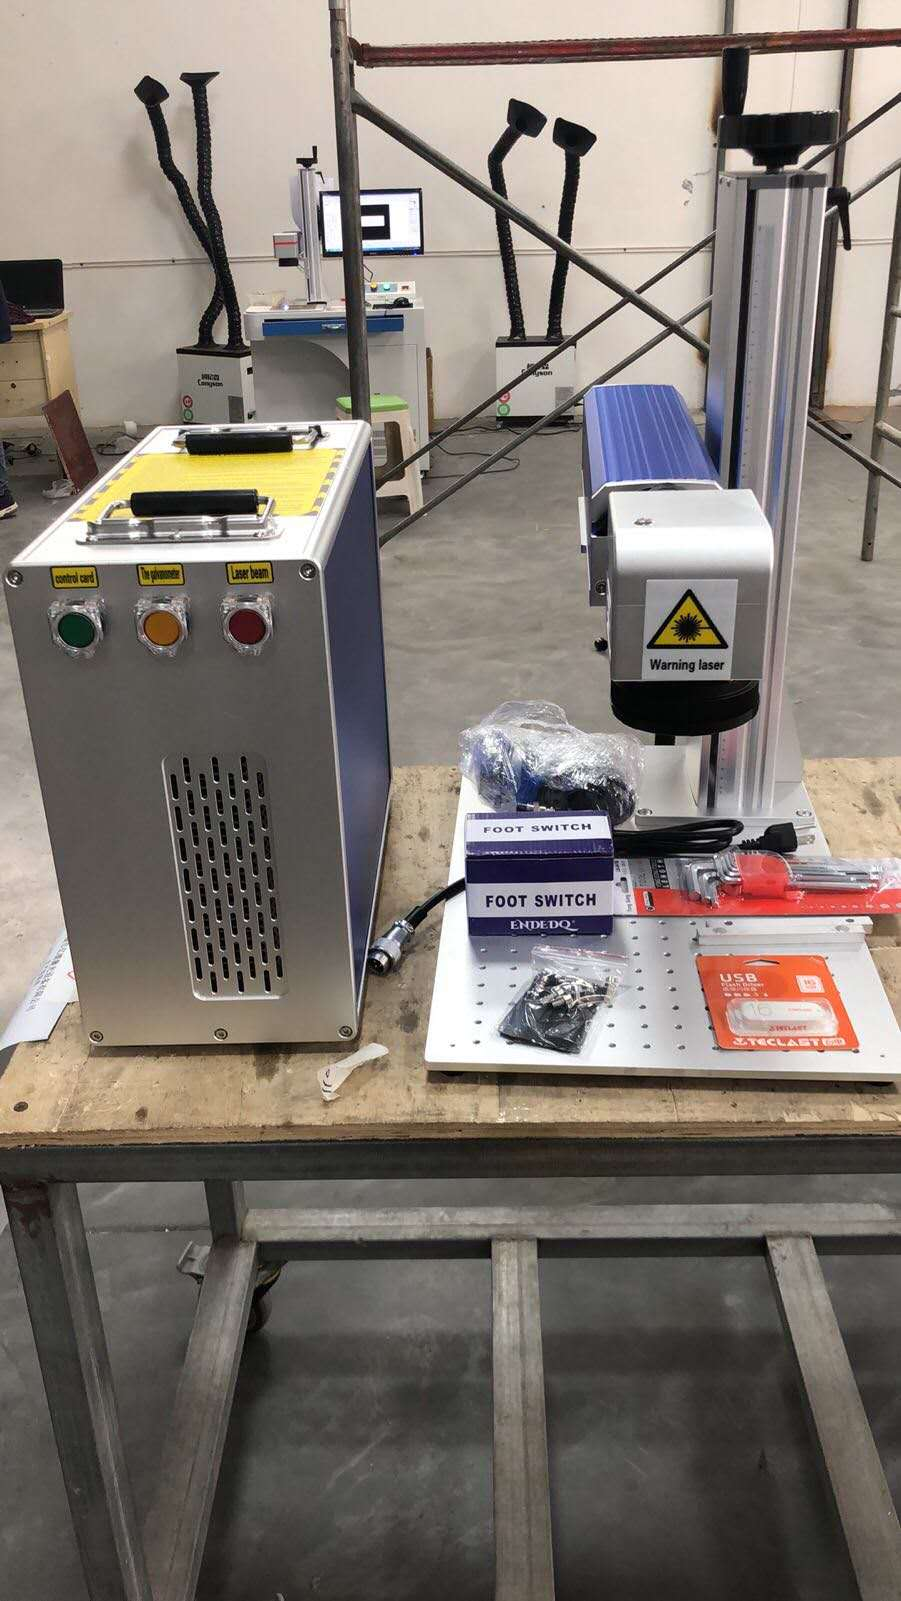 30W MAX Raycus And JPT Fiber Laser Marking Machine With 200-200mm Working Table 8